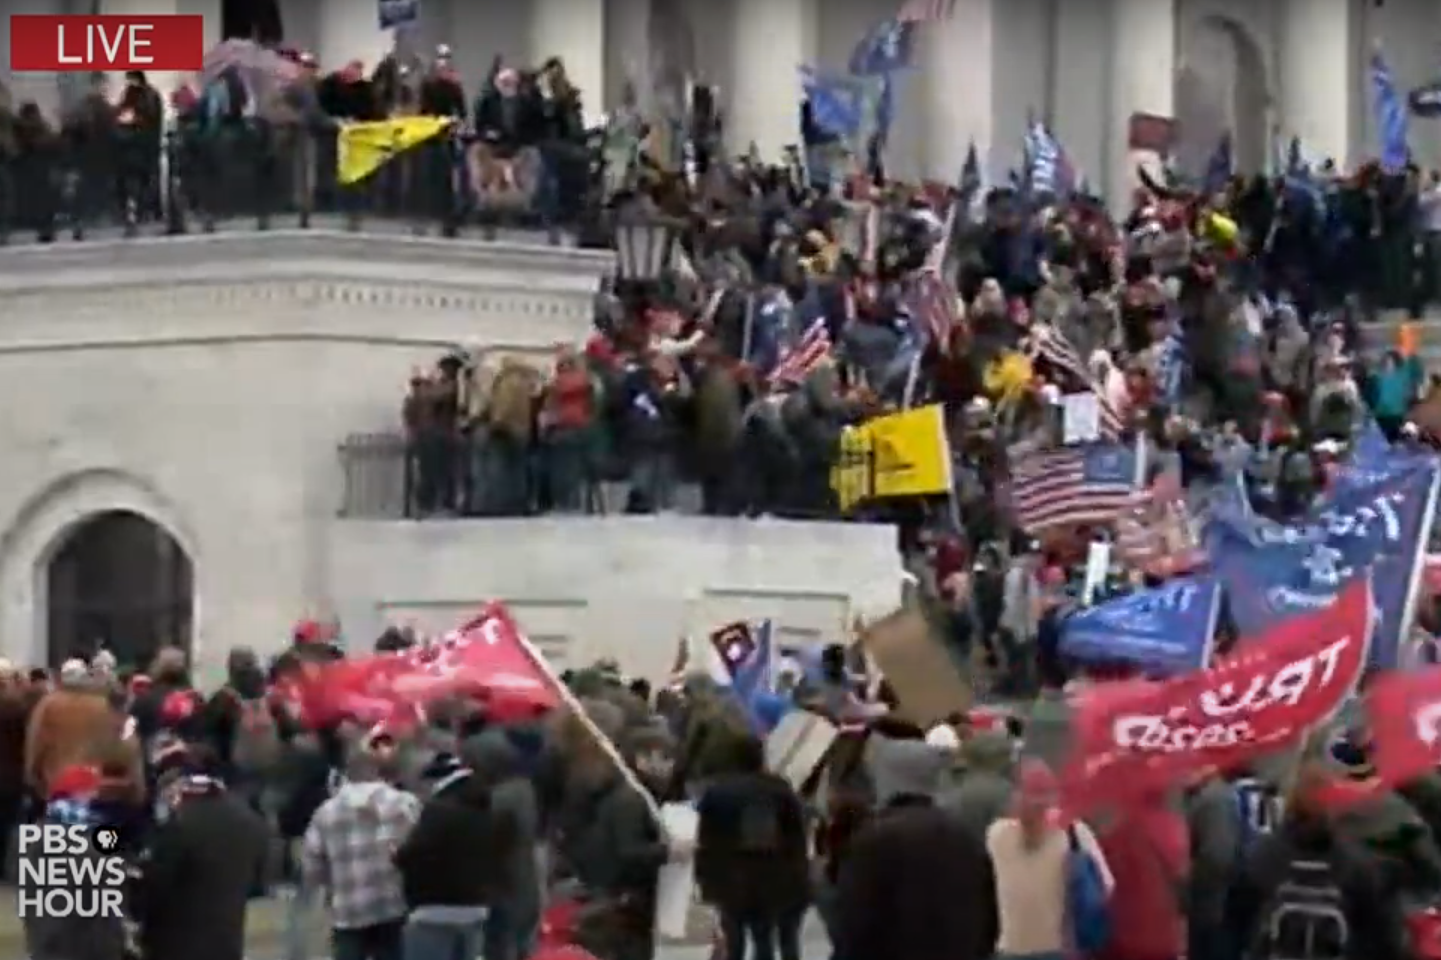 A screenshot of PBS Newshour coverage of the protesting at the U.S. Capitol, Jan. 6 2021.